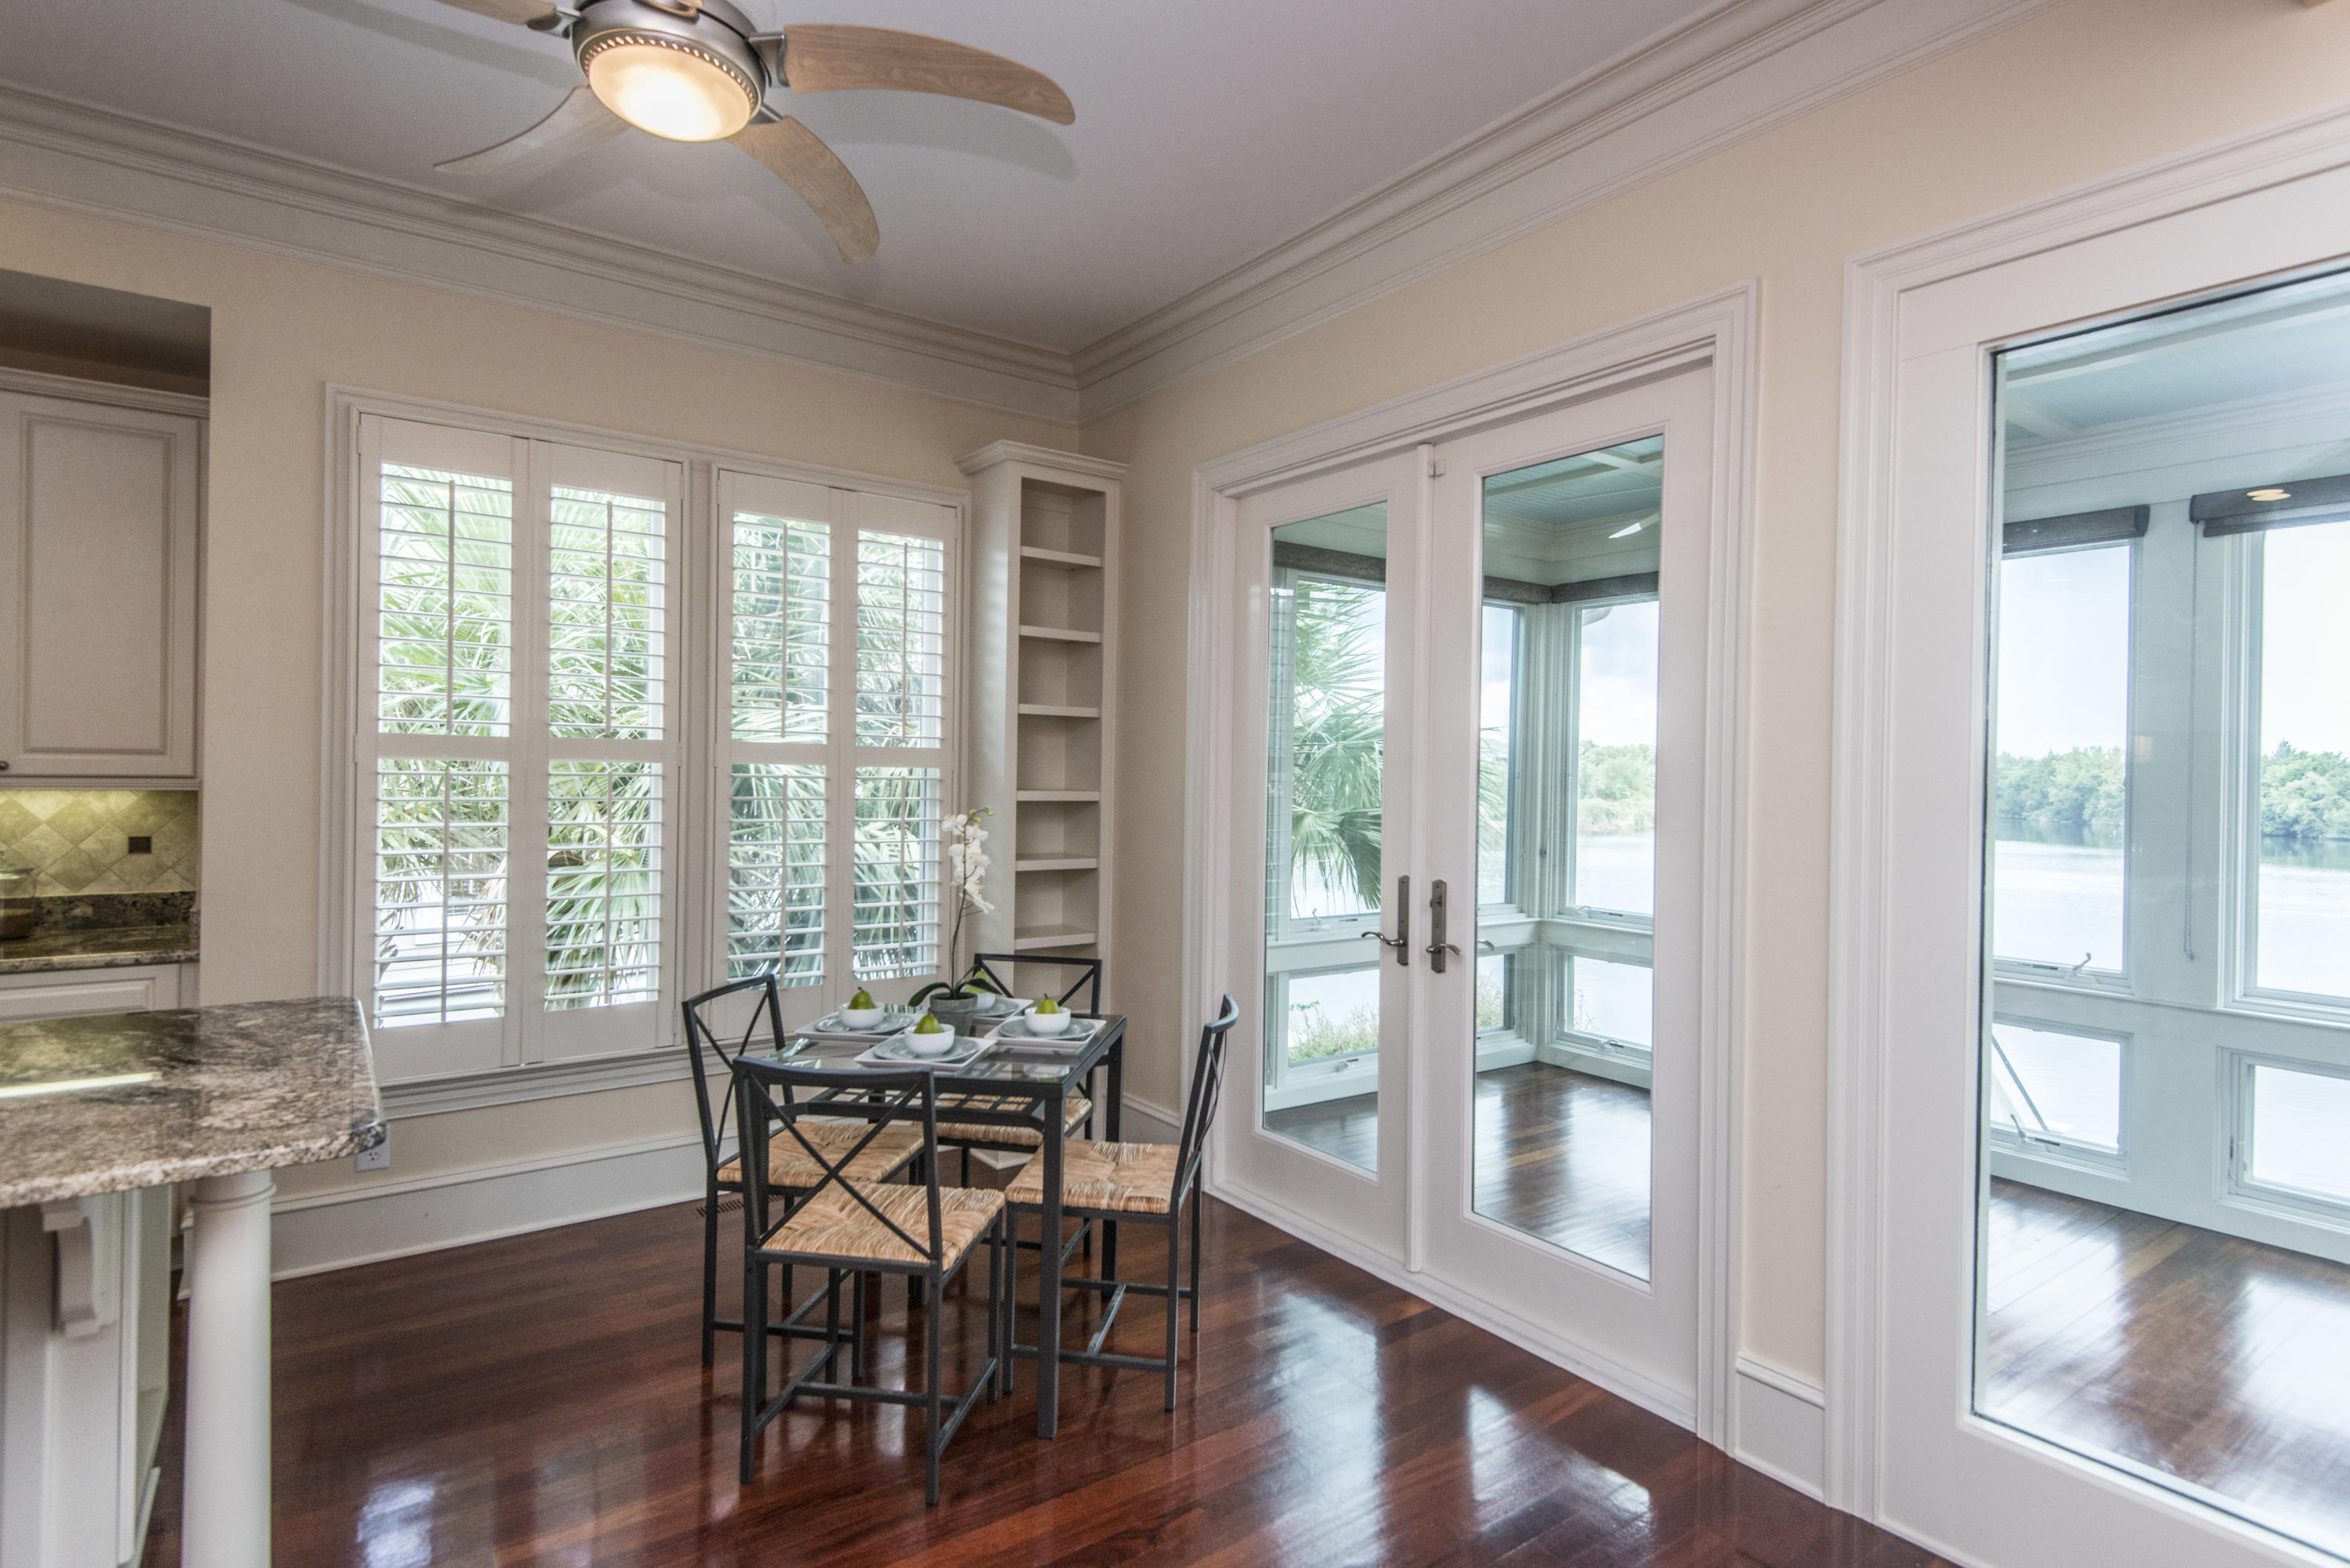 Shell Point Homes For Sale - 1509 Appling, Mount Pleasant, SC - 4